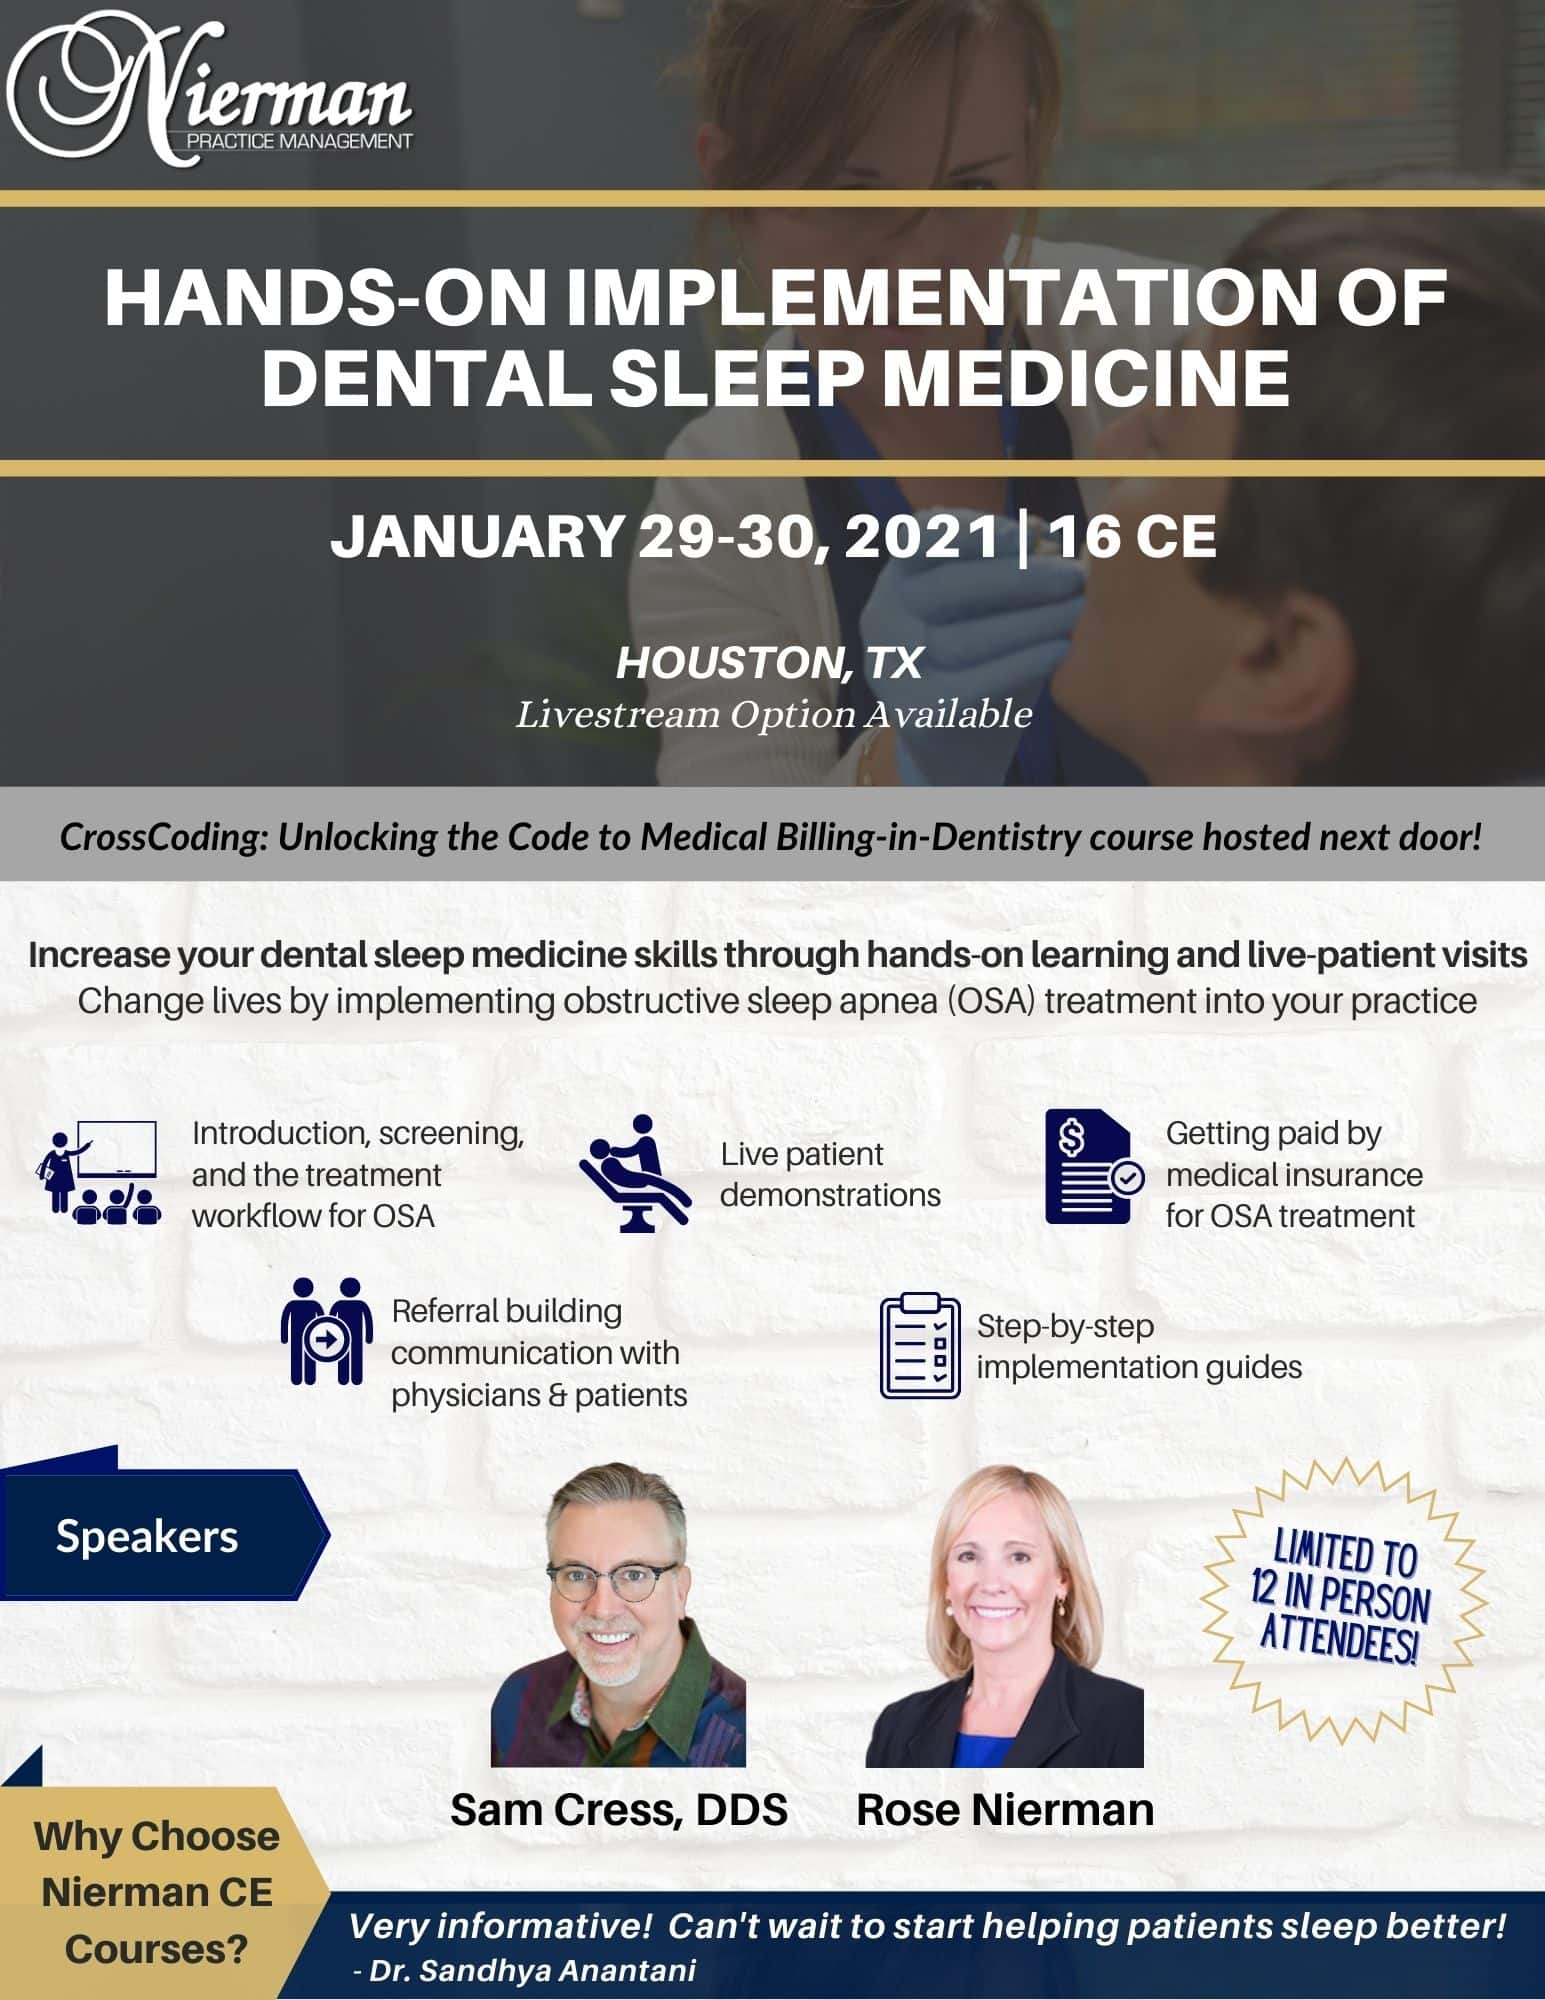 Hands-on Dental Sleep Medicine Course Jan 29-30, 2021 in Houston, TX w Dr. Sam Cress and Rose Nierman - Nierman Practice Mgmt